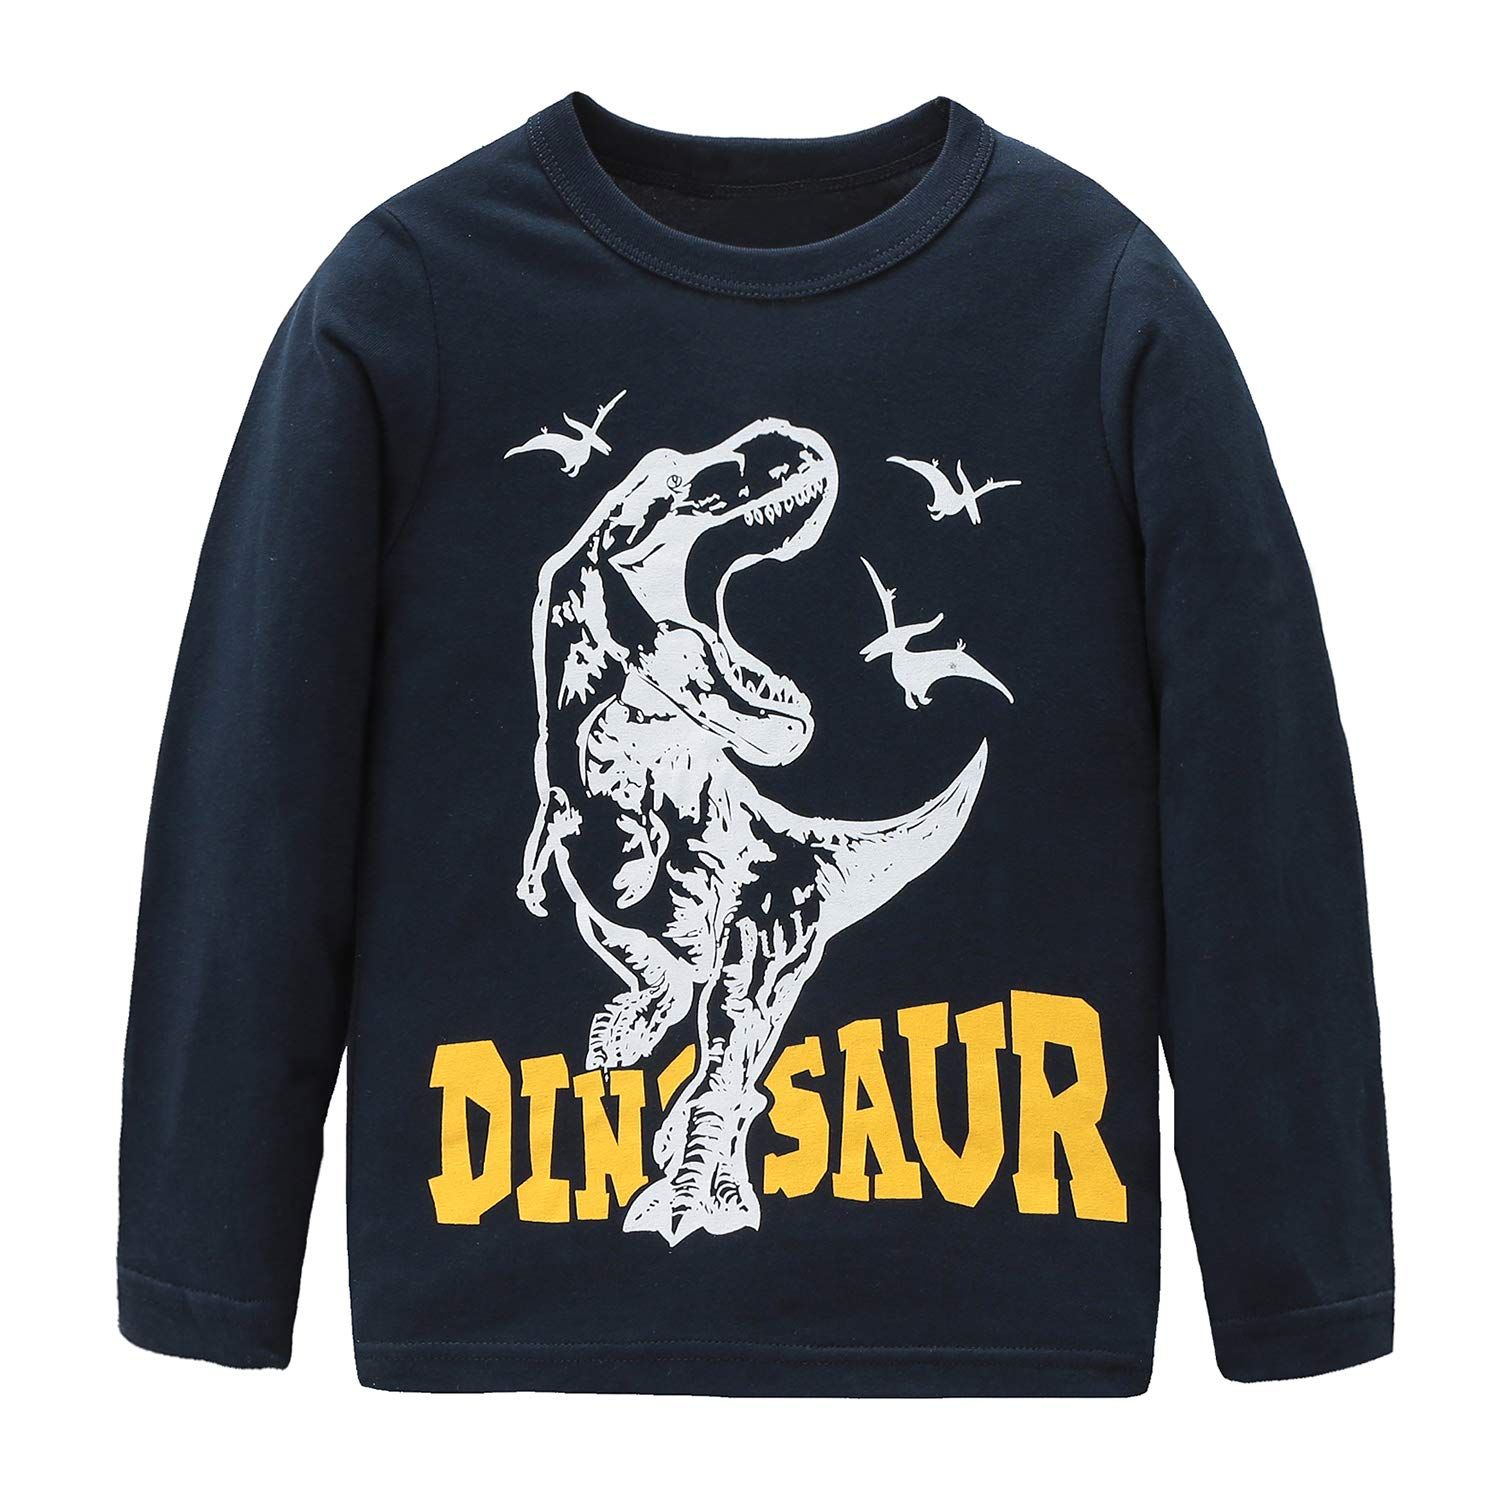 Boys Cotton Long Sleeve T-Shirts T Rex Dinosaur Shirt Graphic Tees Blue 7T